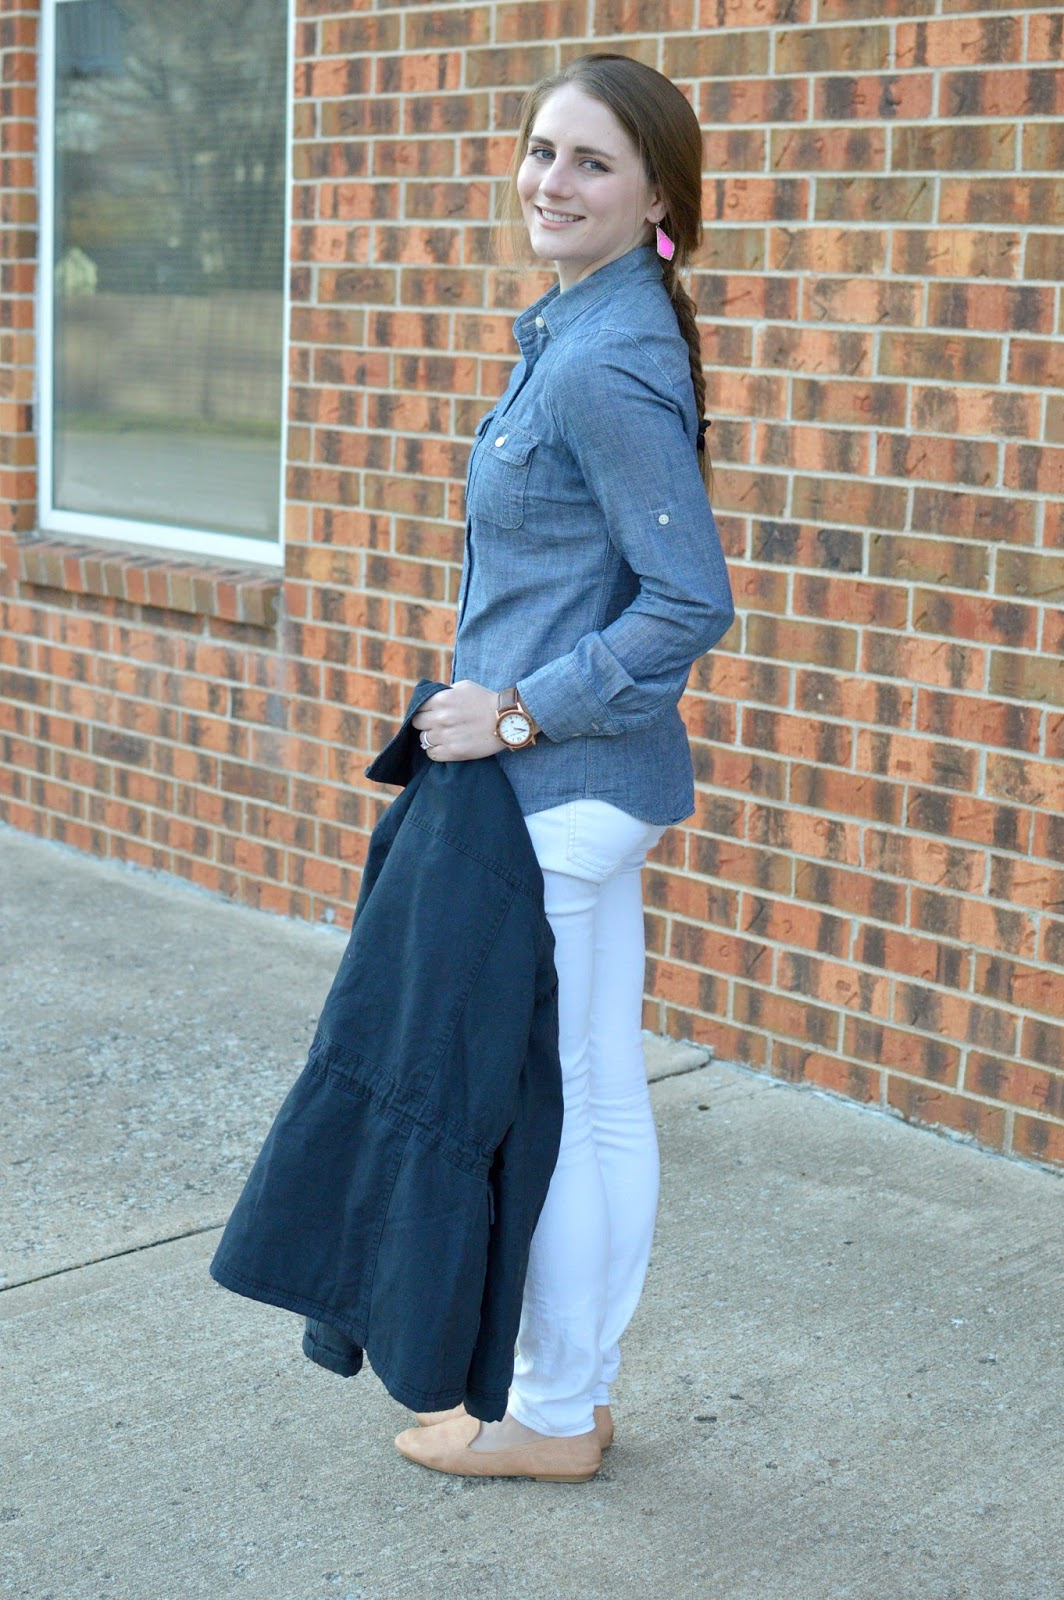 chambray top with white skinny jeans and a navy utility jacket for spring